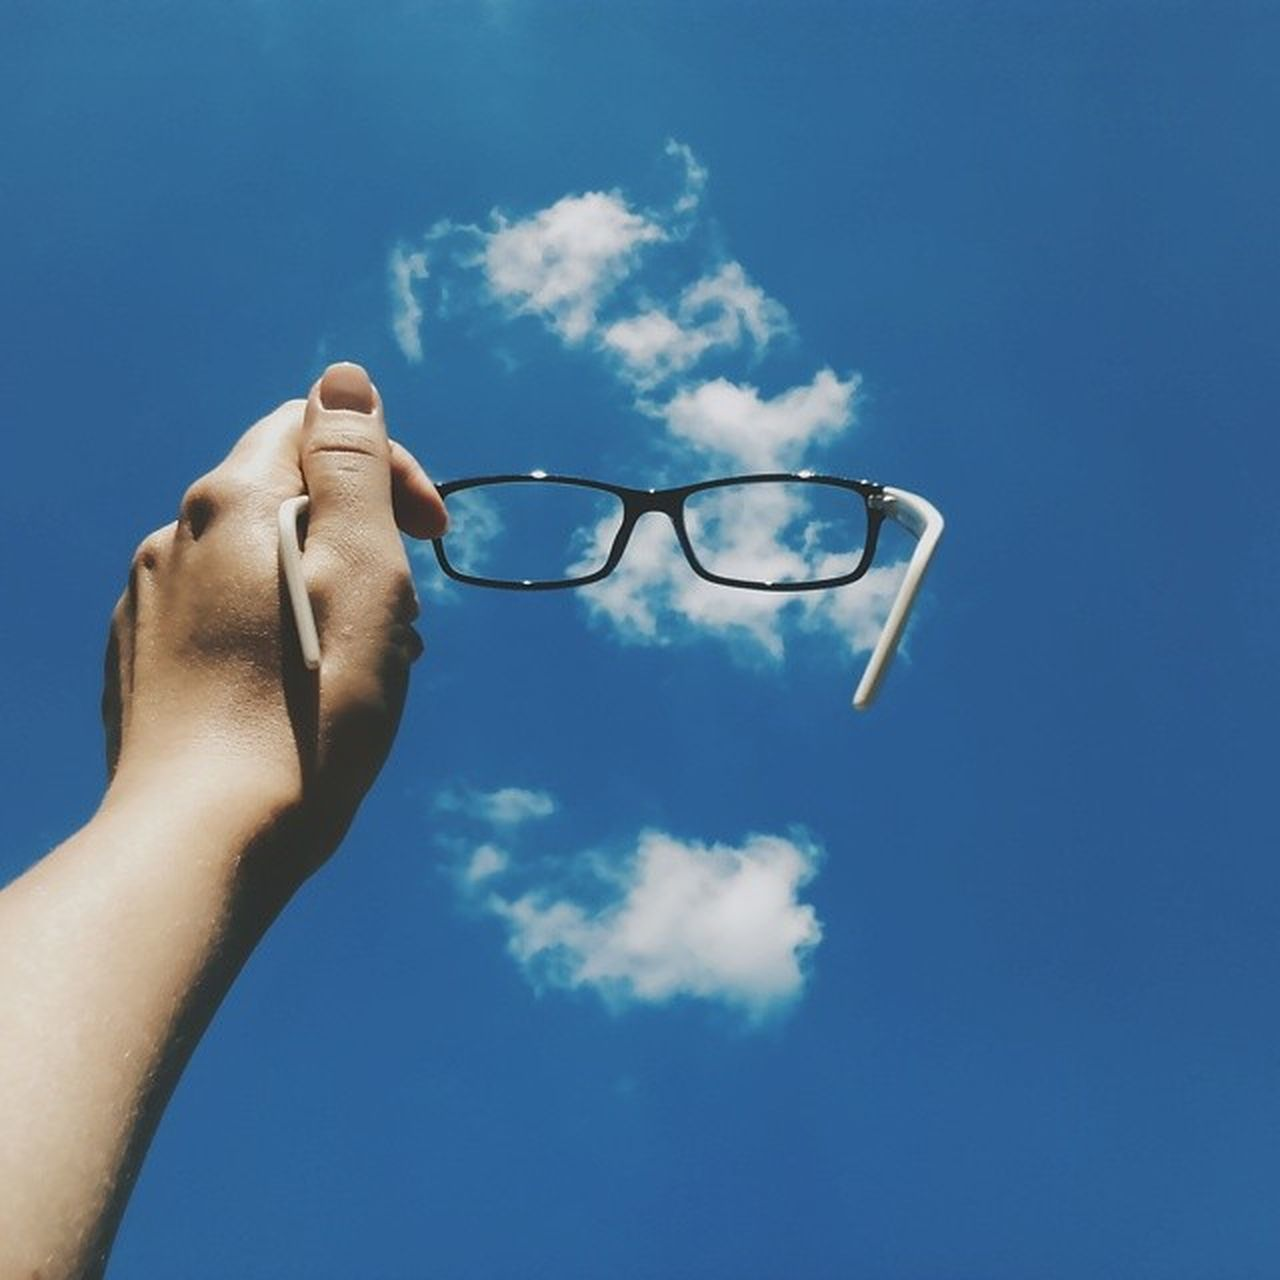 human hand, human body part, sky, blue, one person, eyeglasses, personal perspective, cloud - sky, real people, day, holding, low angle view, outdoors, men, eyesight, close-up, adult, people